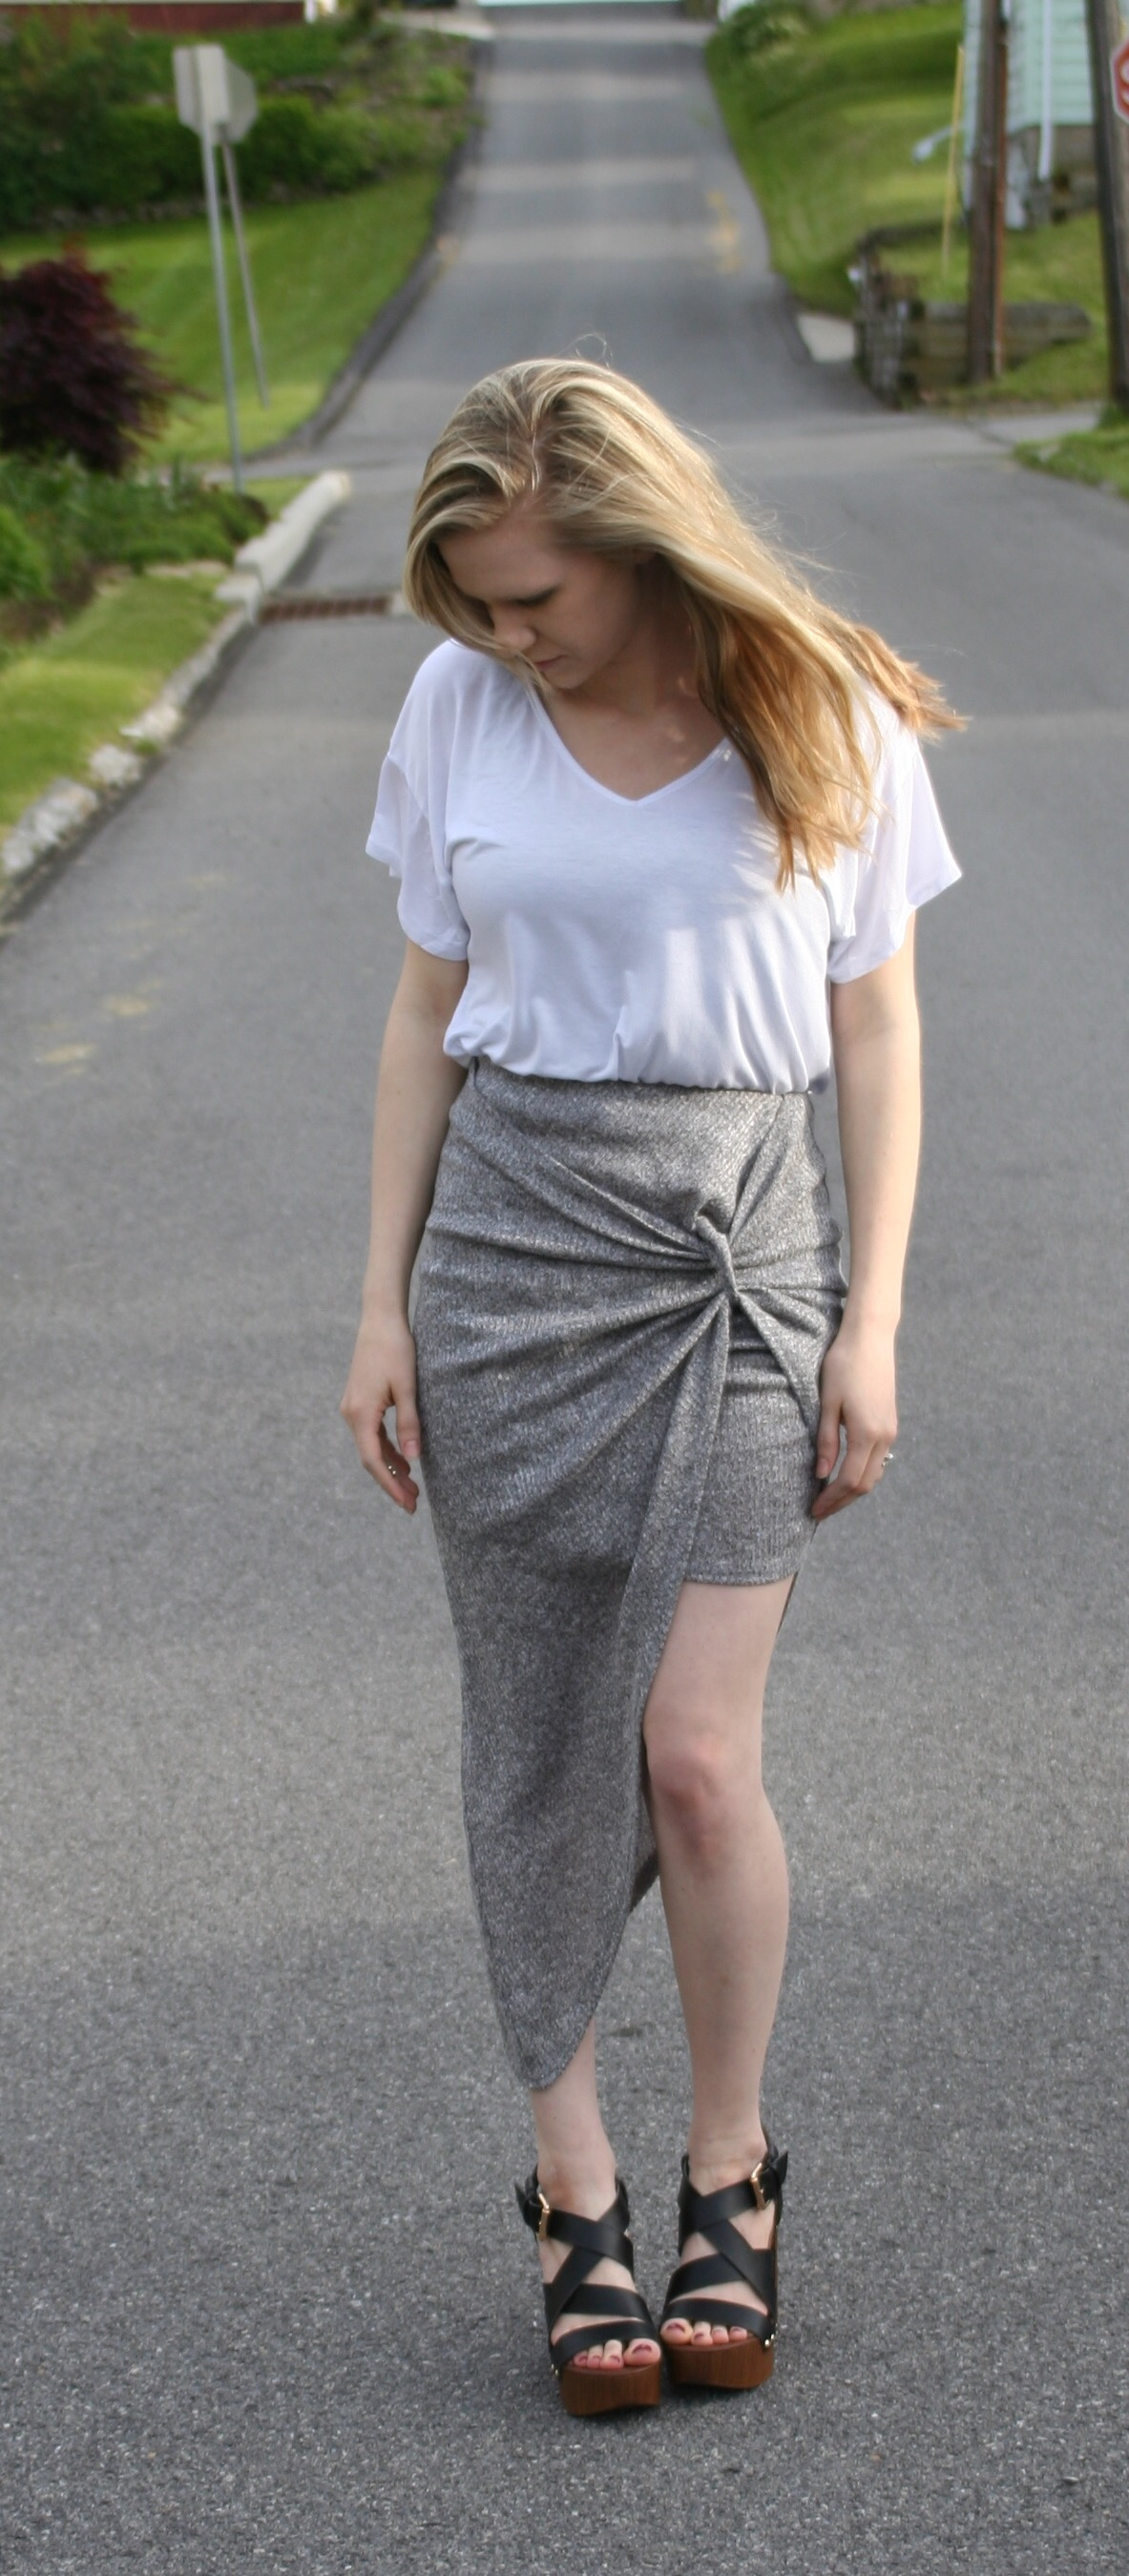 knotted skirt final 4